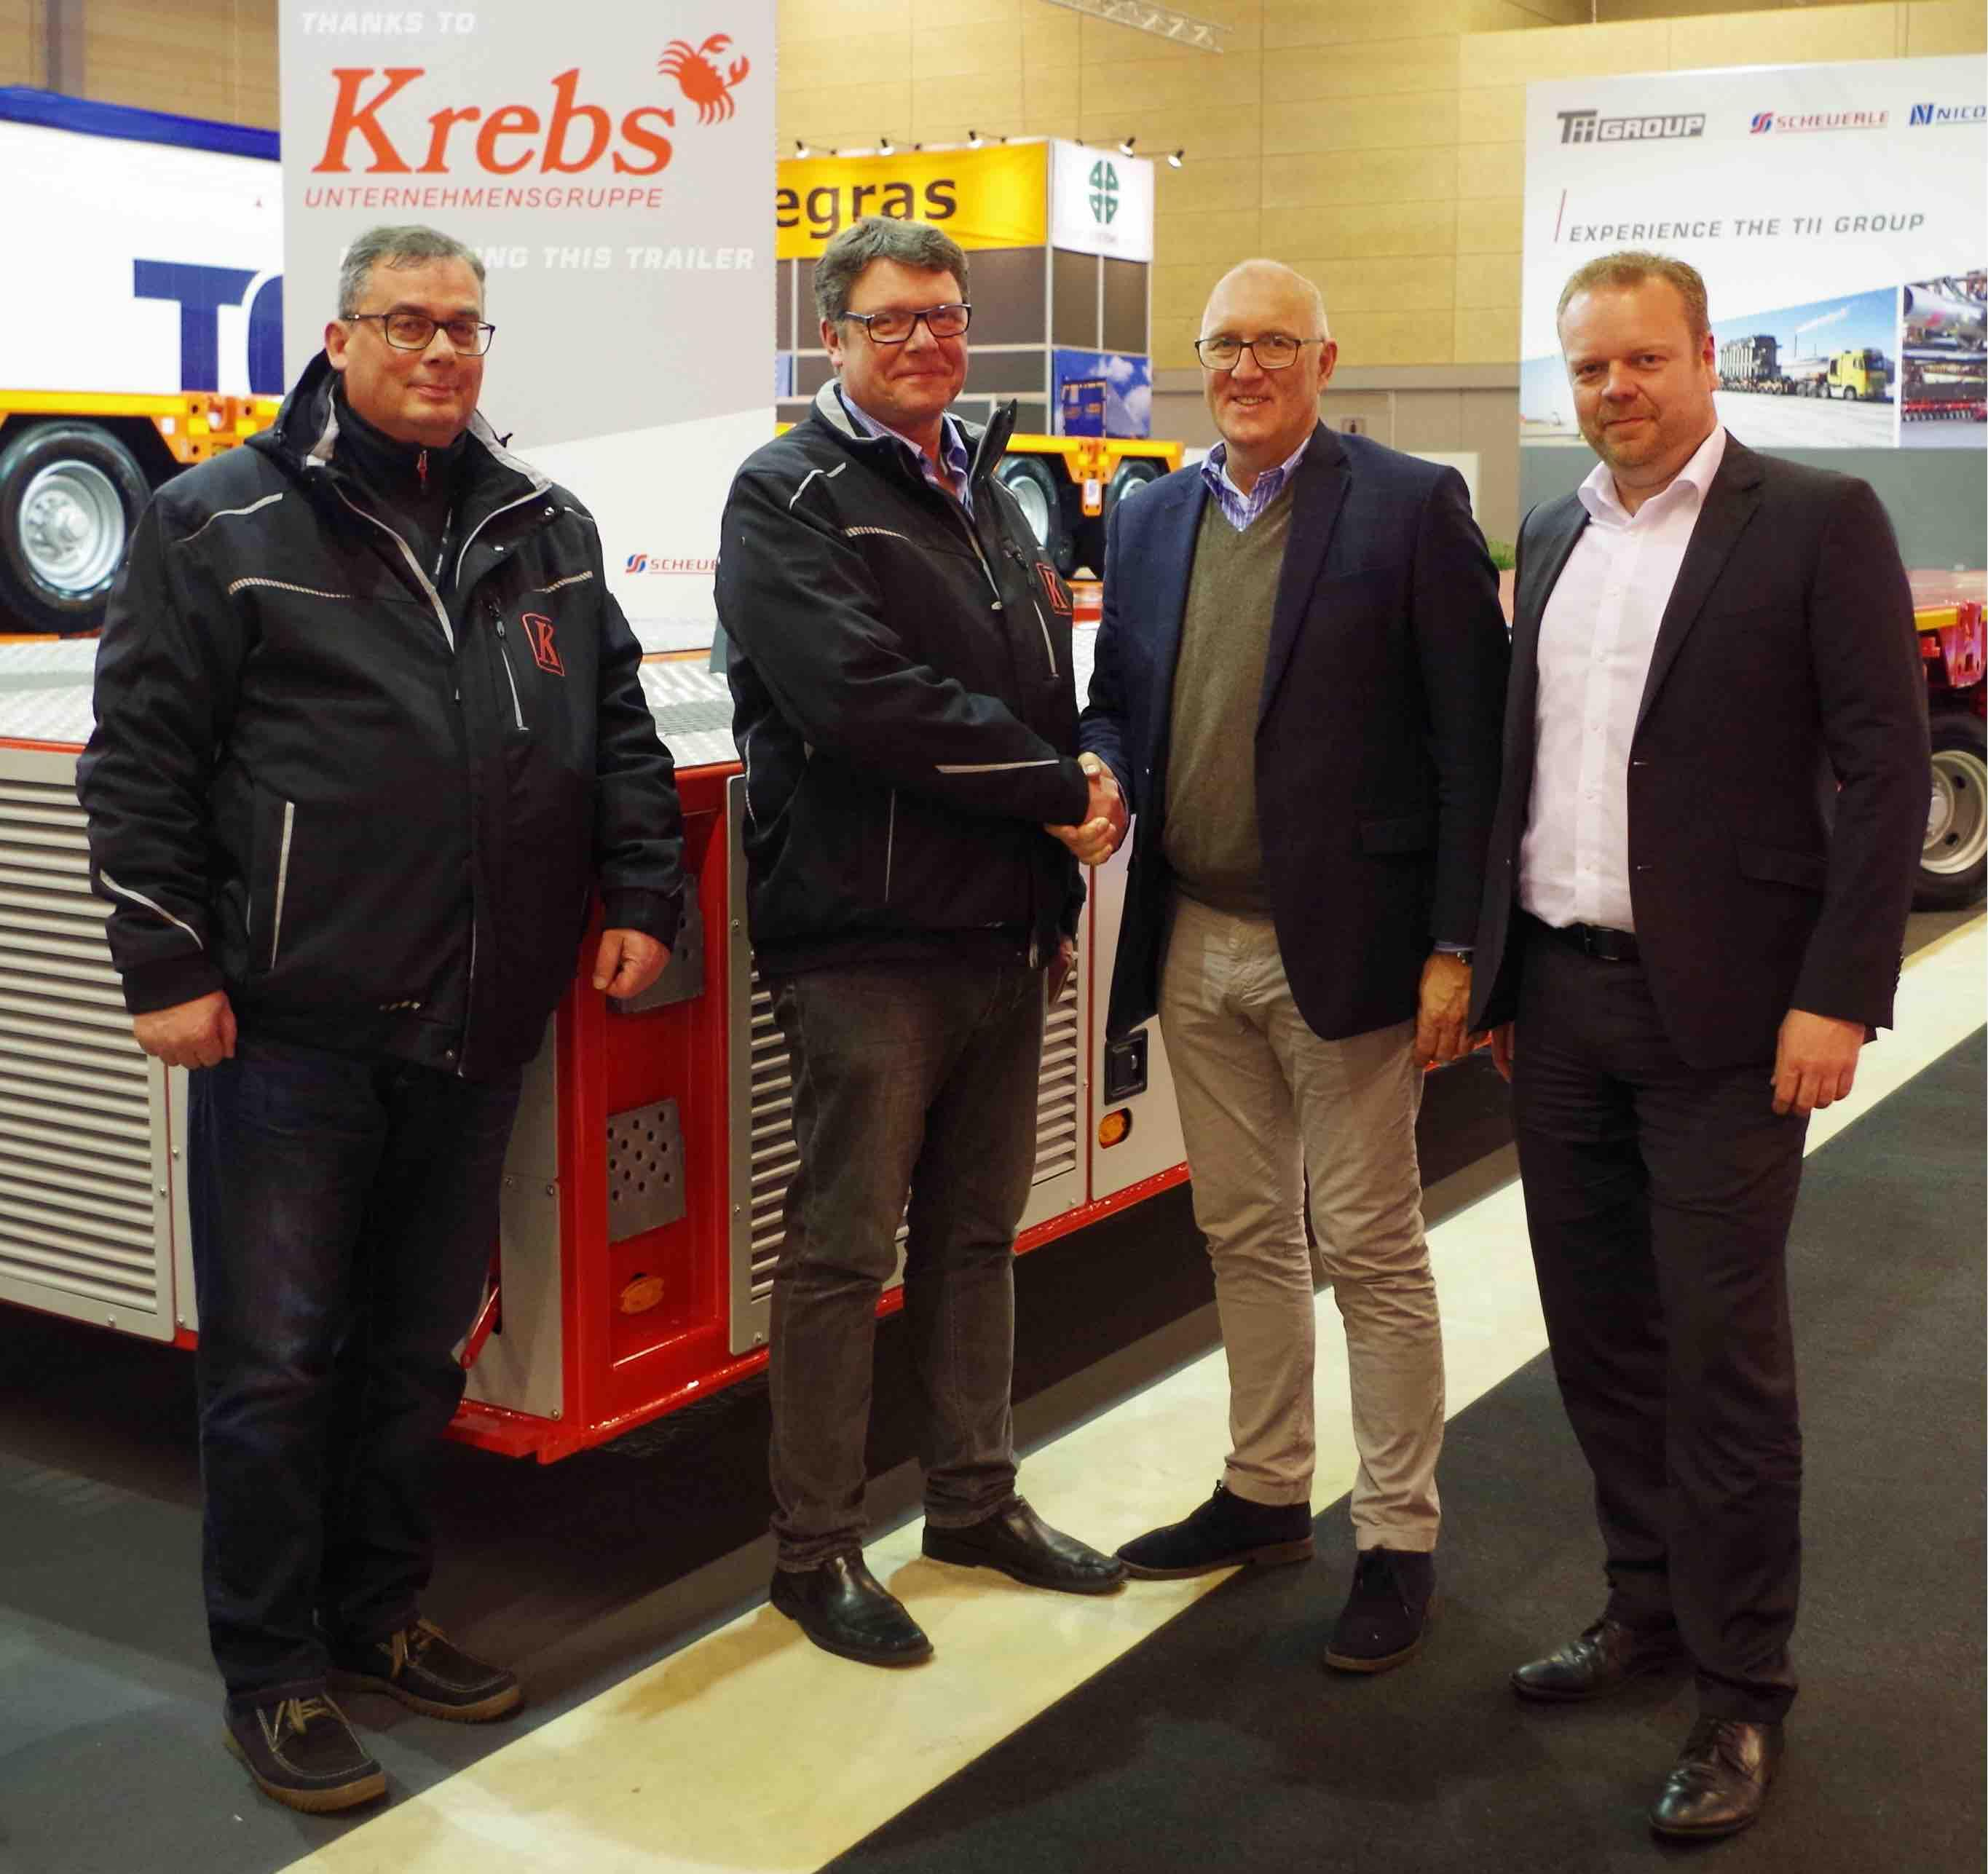 Caption: The handover of the axle lines took place at Transport Fair 2019 in Denmark. From left to right: Jörg Neuhäusel, technical director, Krebs Group; owner Detlef Krebs; Bernd Schwengsbier, president TII Sales; and Markus Pflederer, key account manager, TII Sales.